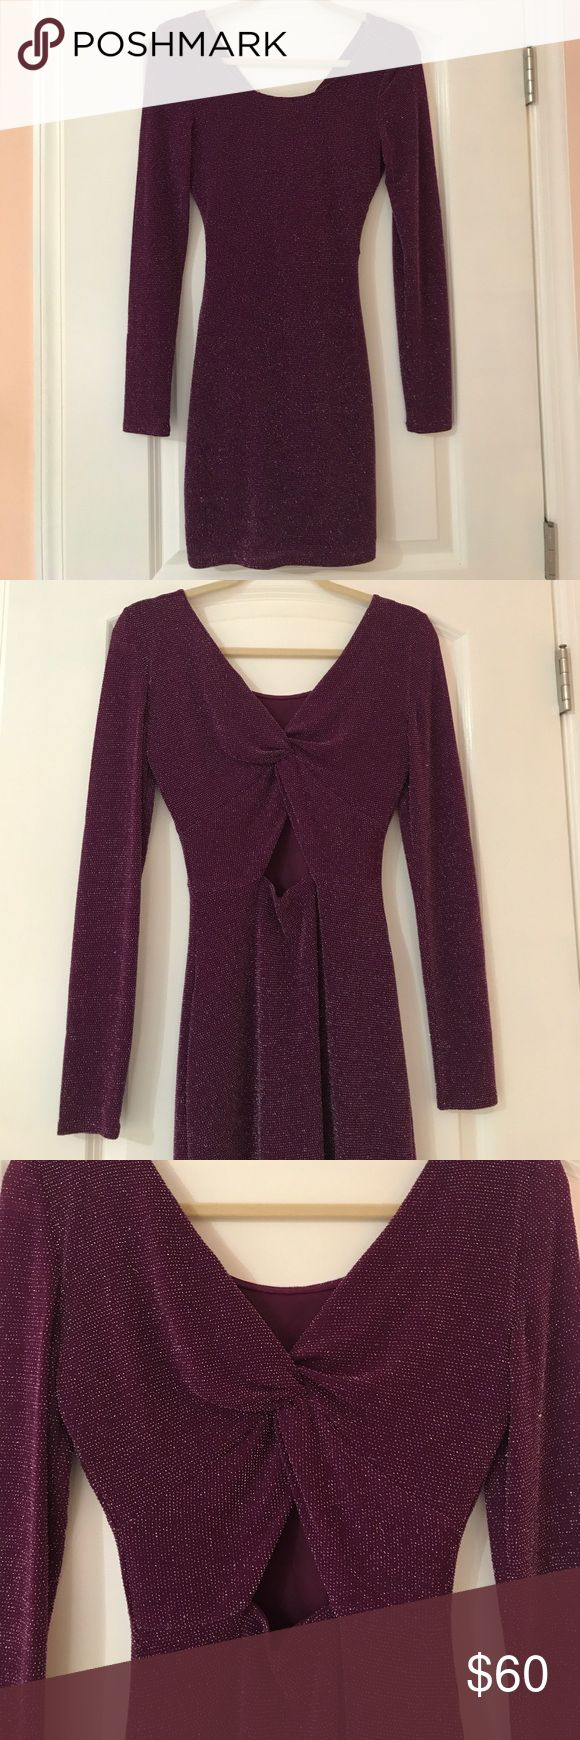 Guess Los Angeles Deep Purple Sparkle Dress Worn a few times but kept in great condition. This deep purple dress with silver sparkles features a beautiful triangle shape cut-out back. It's long sleeves and hits about mid-thigh. Guess Dresses Long Sleeve